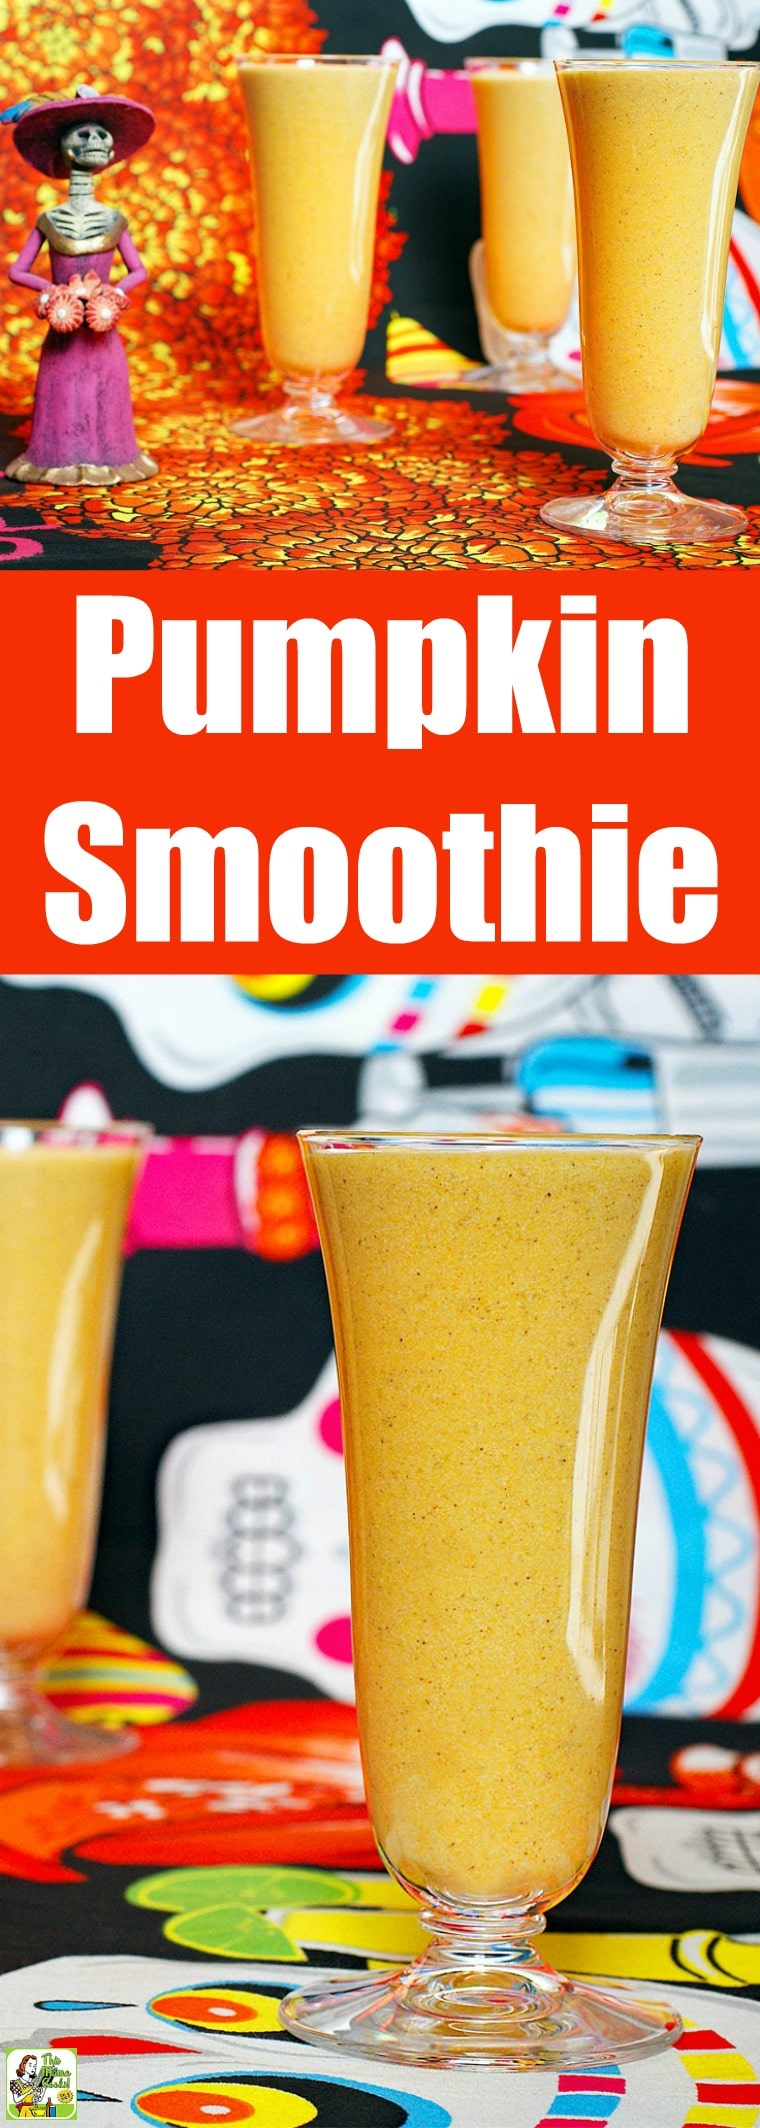 This six-ingredient Pumpkin Smoothie is a high protein, sugar-free drink recipe. This pumpkin protein shake is also vegan and dairy-free. Enjoy this pumpkin breakfast smoothie on the go. #recipes #easy #recipeoftheday#easyrecipe #easyrecipes #breakfast #snacks #pumpkinrecipe #pumpkin #pumpkinspice #veganfood #vegan #veganrecipes #smoothies #smoothiesrecipes #shakes #healthydrinks #healthydrinksrecipe #sugarfree #dairyfree